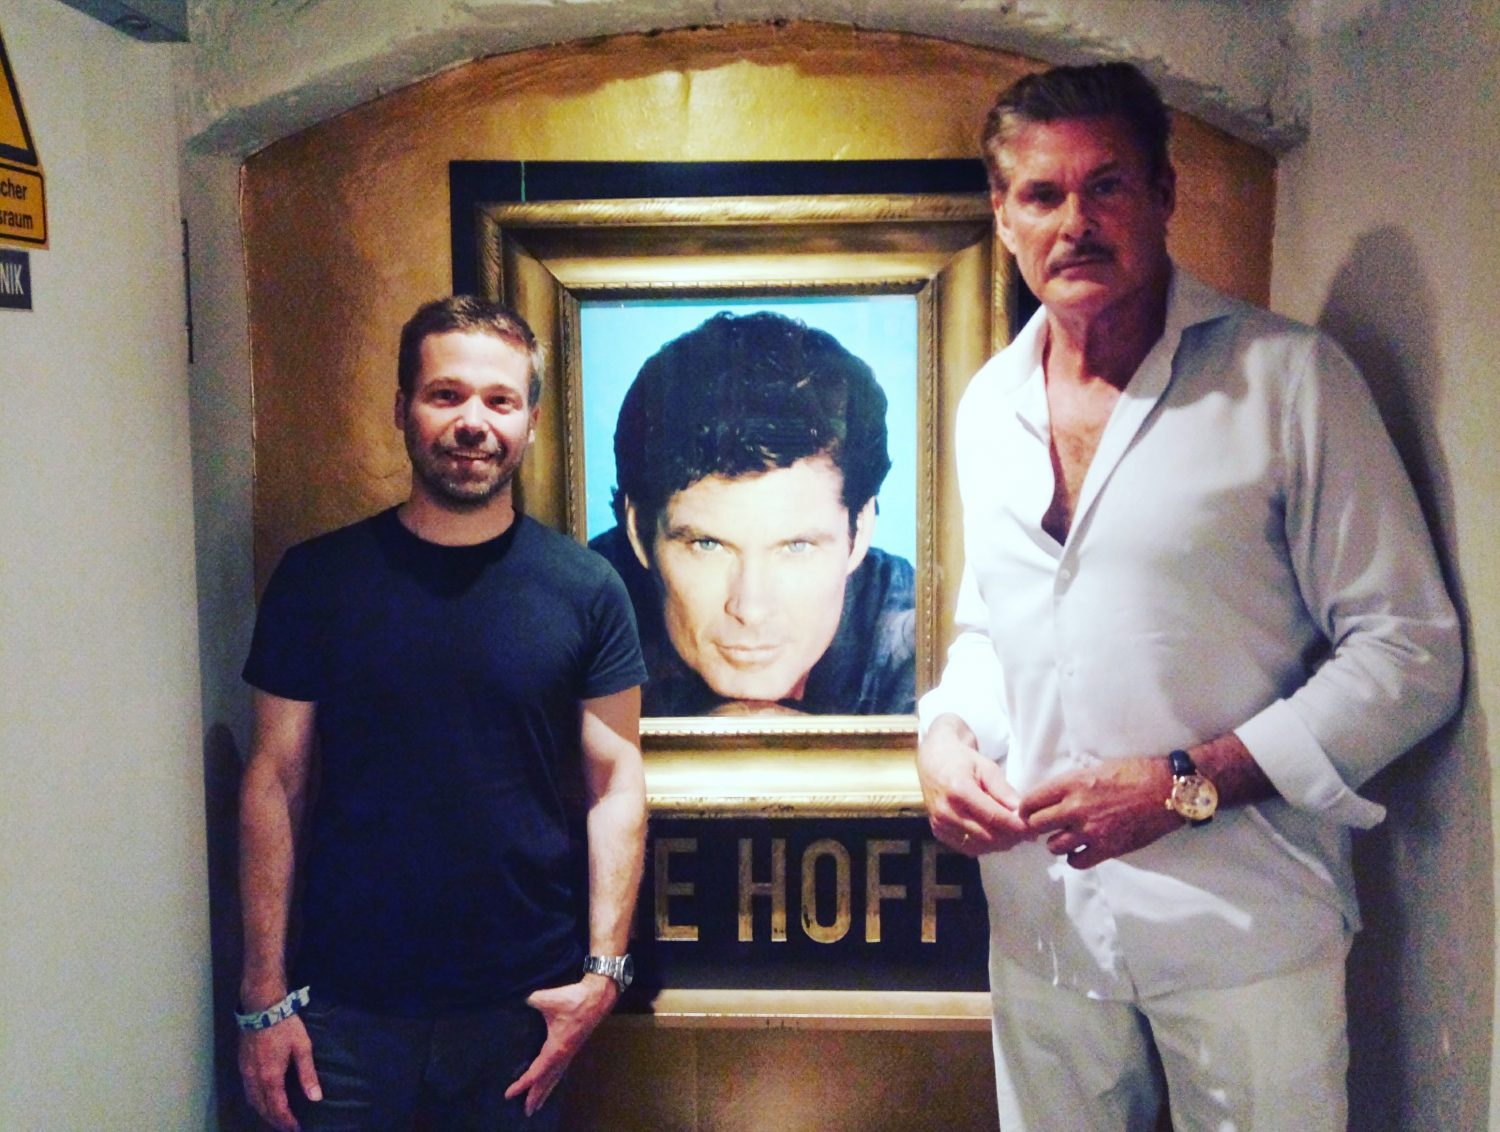 David Hasselhoff visited the Berlin hostel that has built a shrine to him. Image: The Circus Hostel